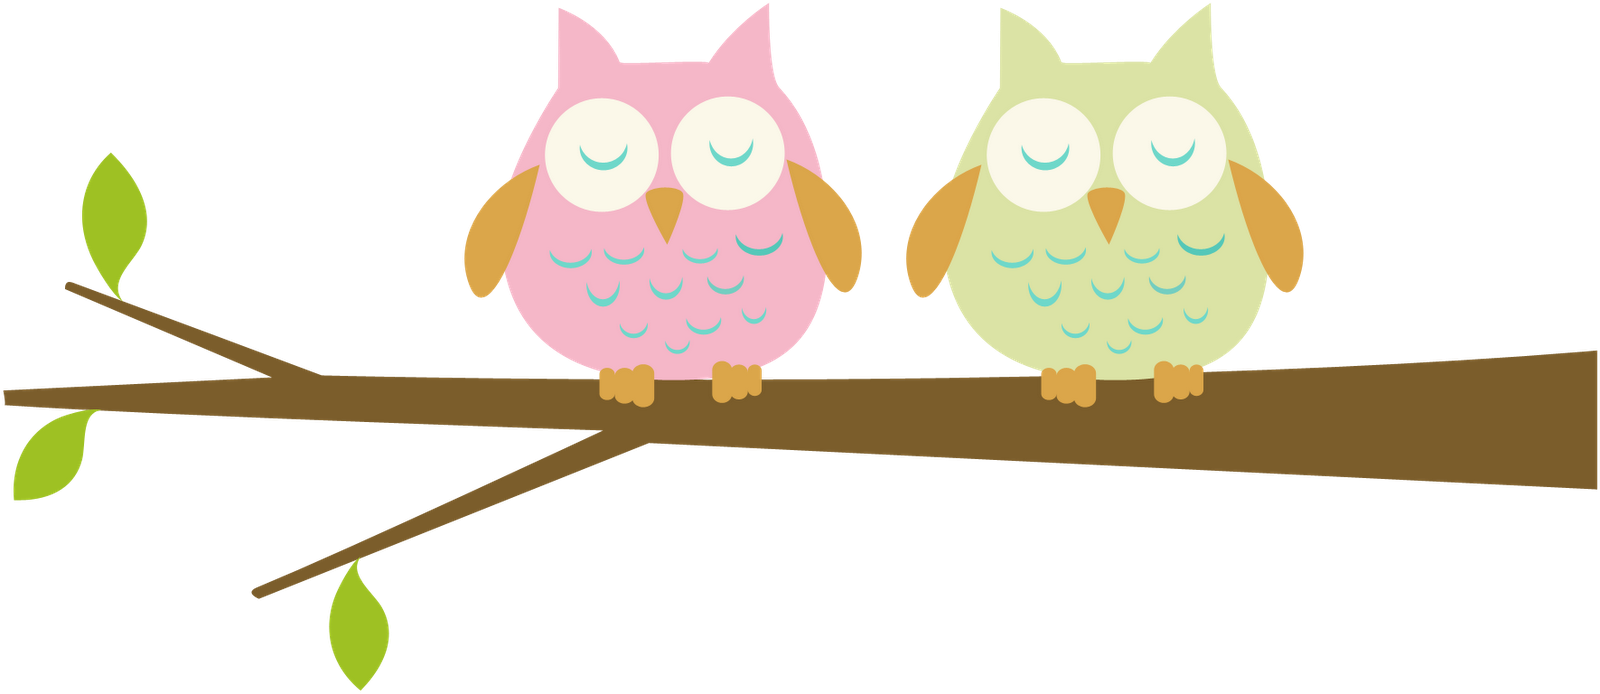 Clip Art Owls Clip Art owl background clipart kid 16 baby clip art free cliparts that you can download to you